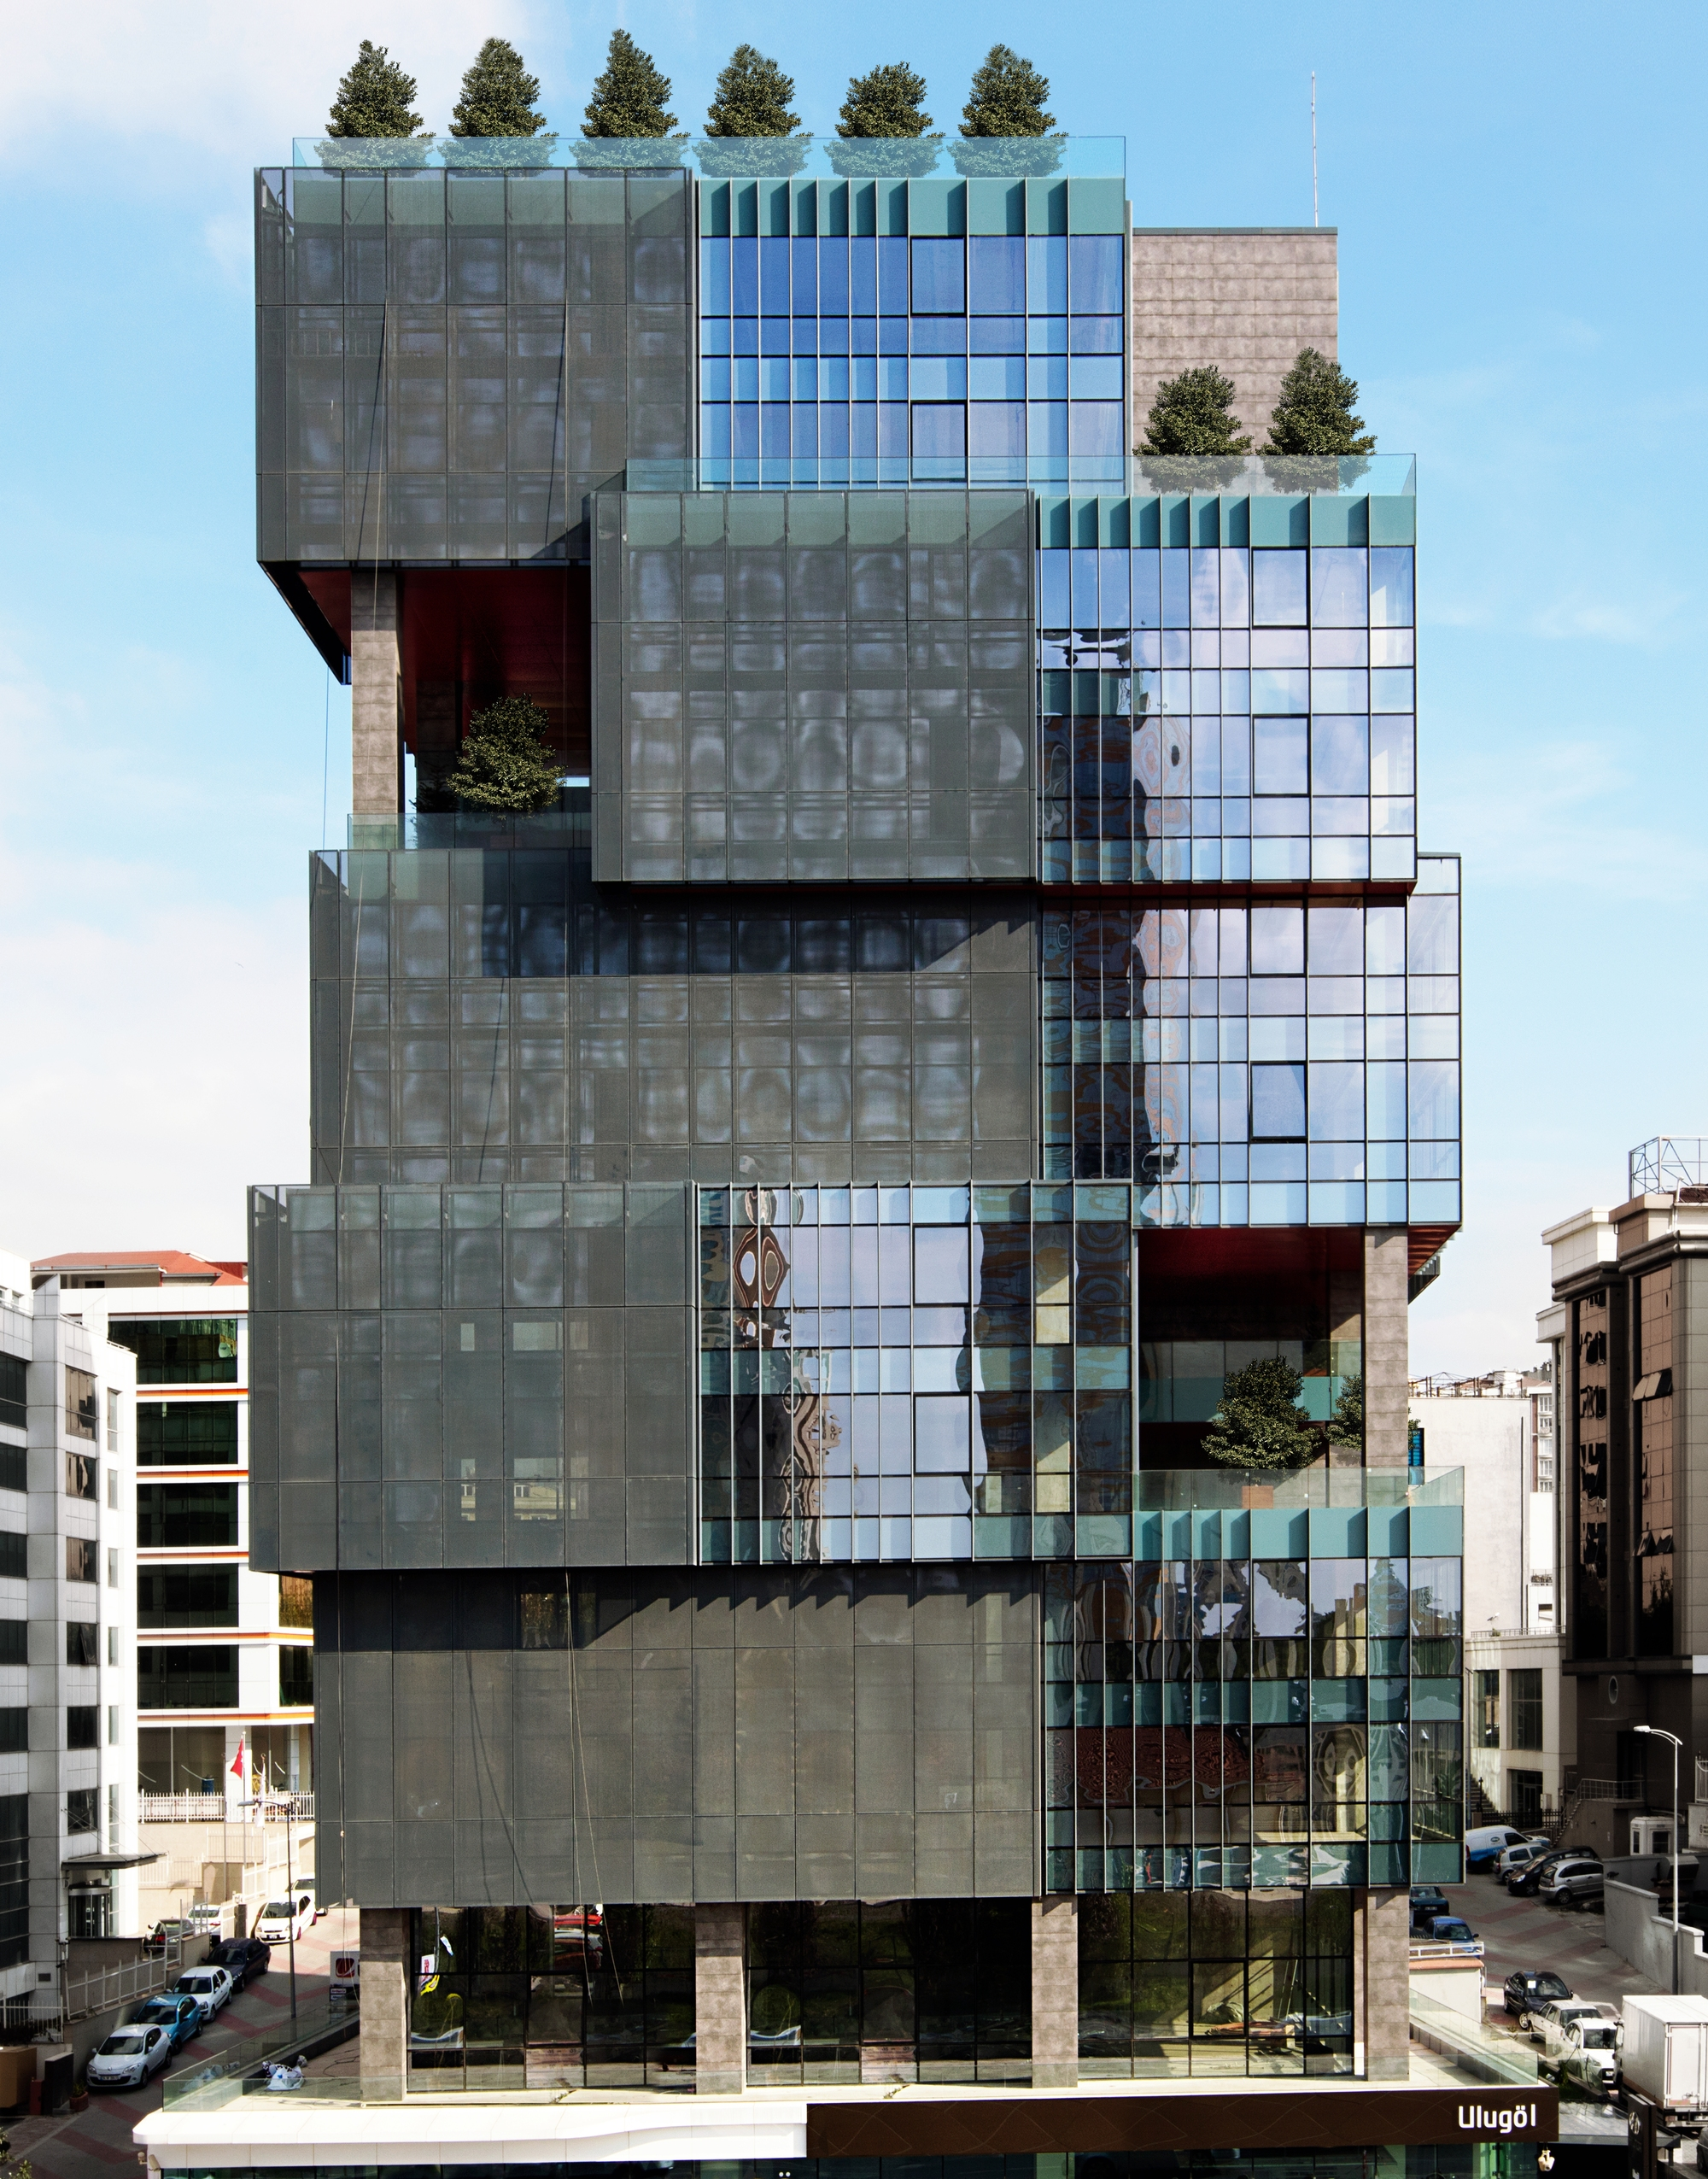 Office Building Architecture the ulugöl otomotiv office building / tago architects | archdaily